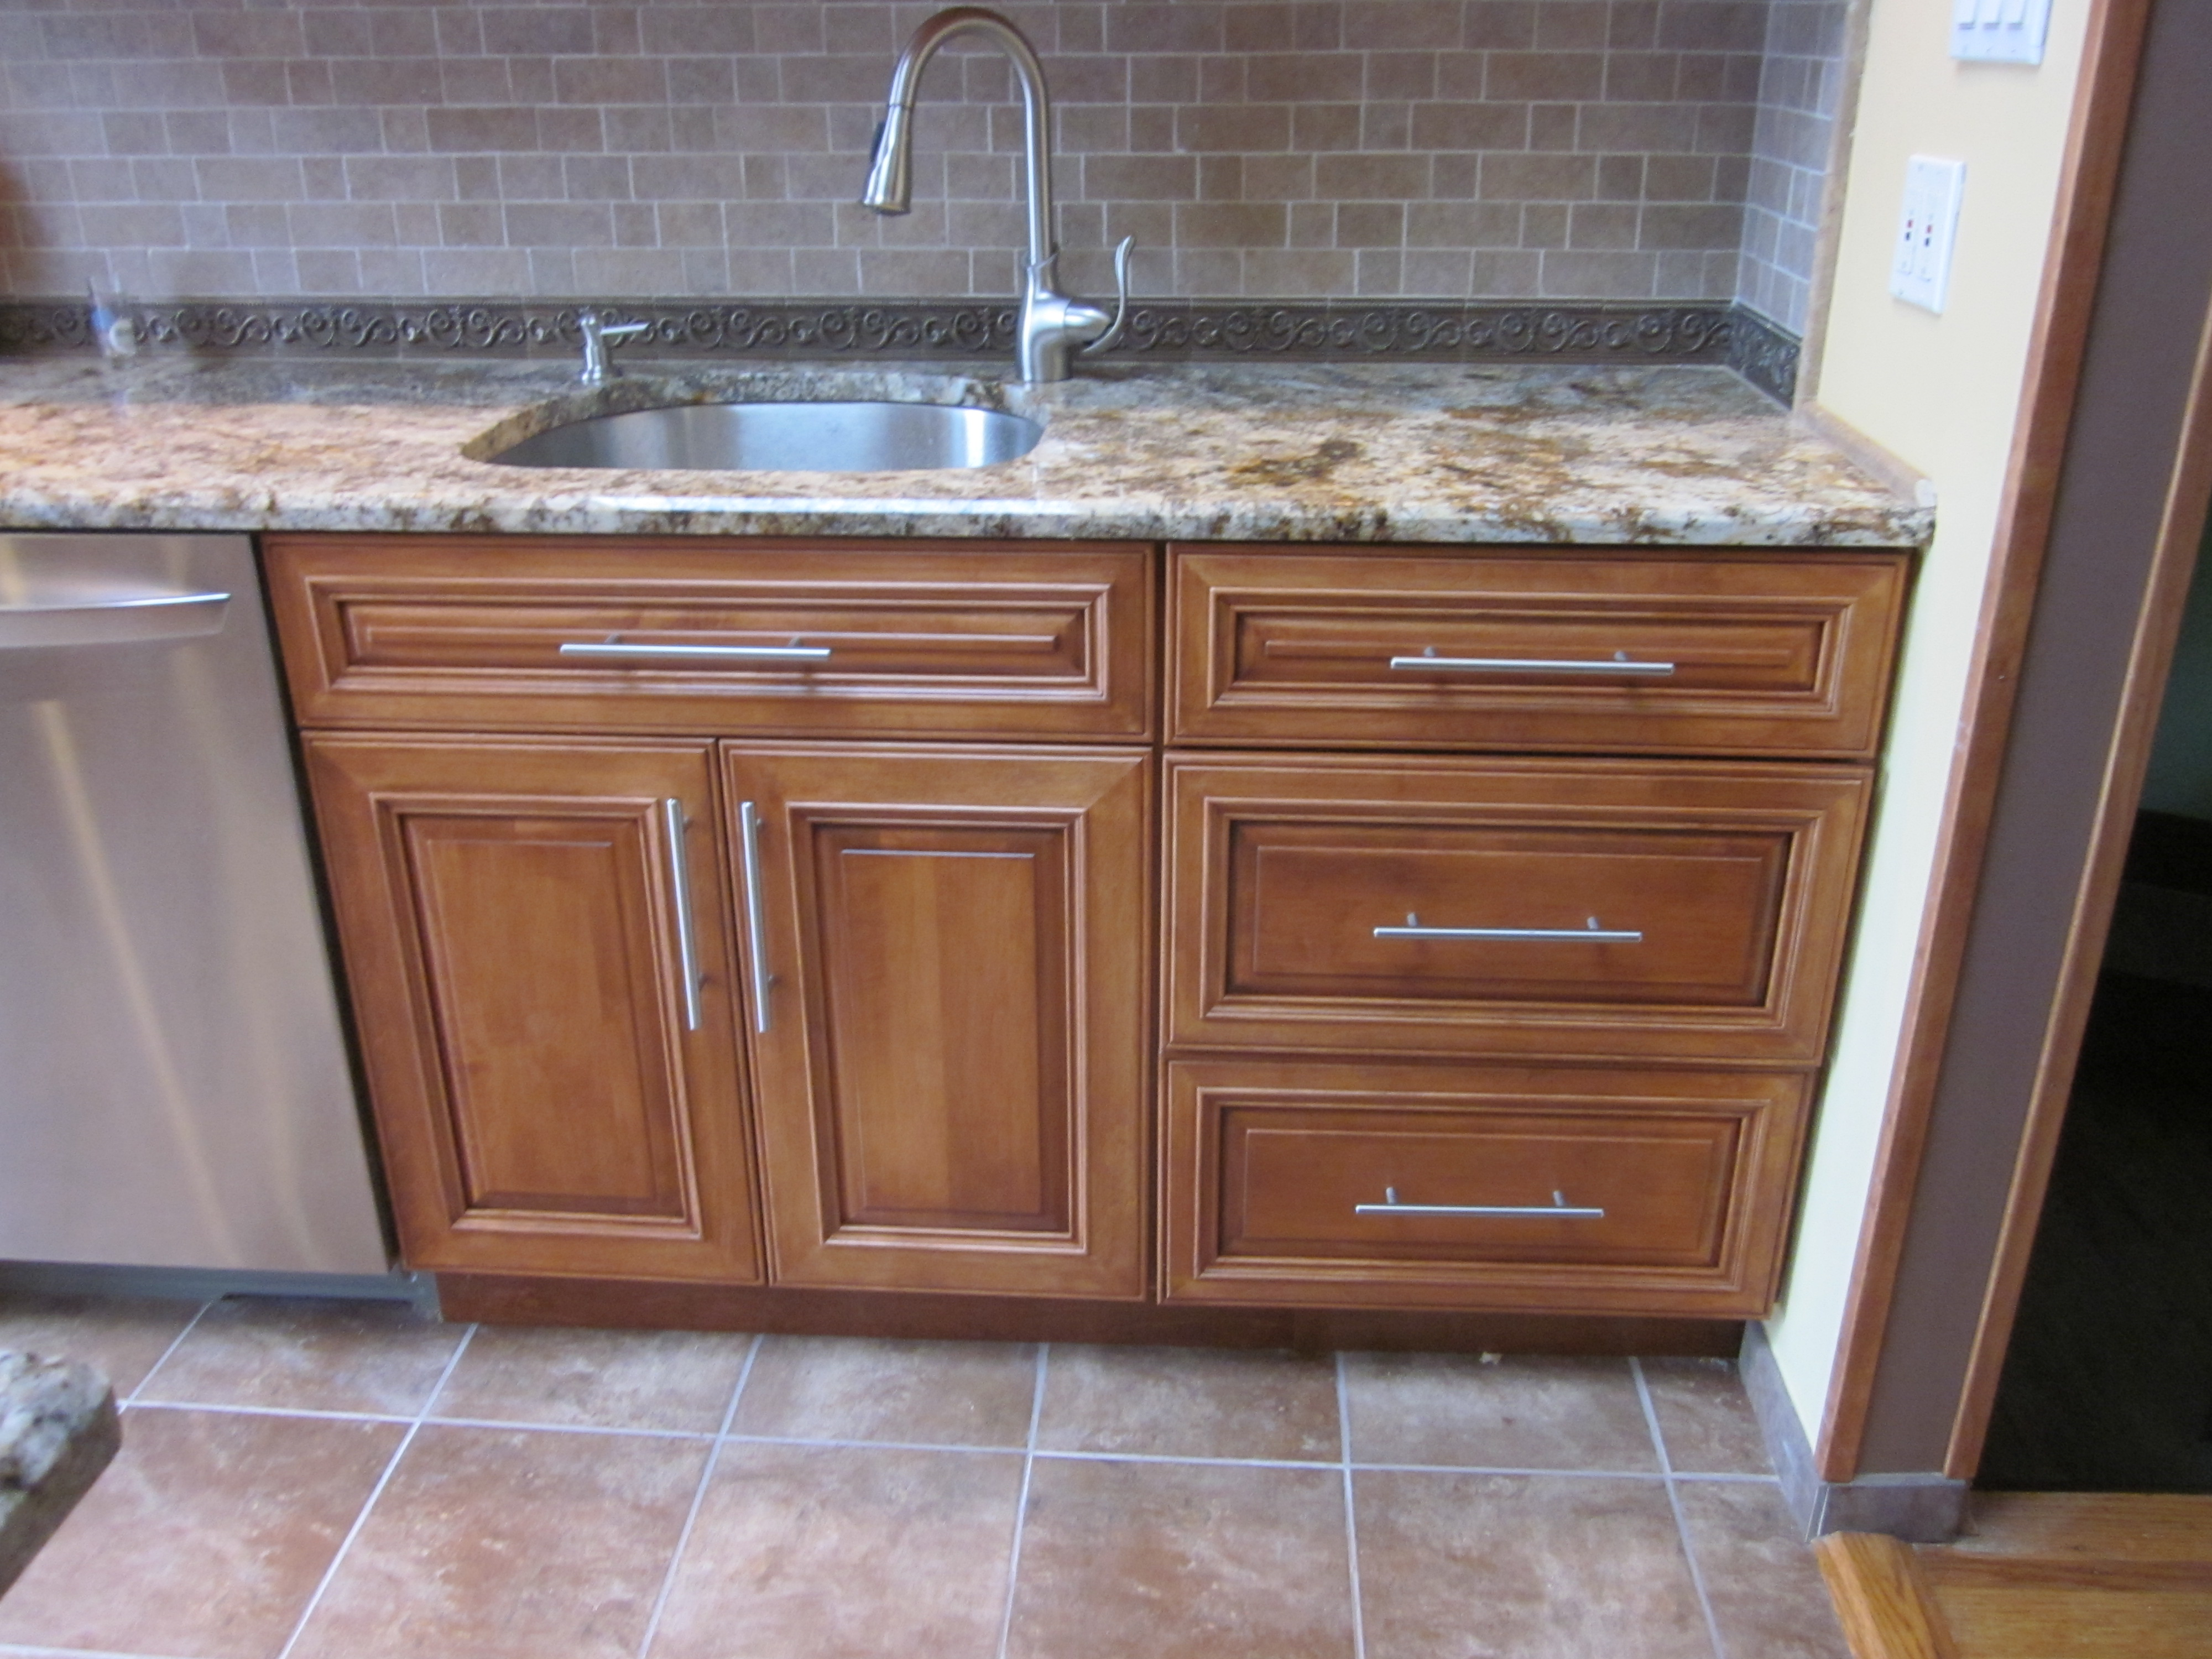 Kitchen Cabinet Refinishing Ny Kitchen Remodeling Ideas New Look Kitchen Refacing Ny